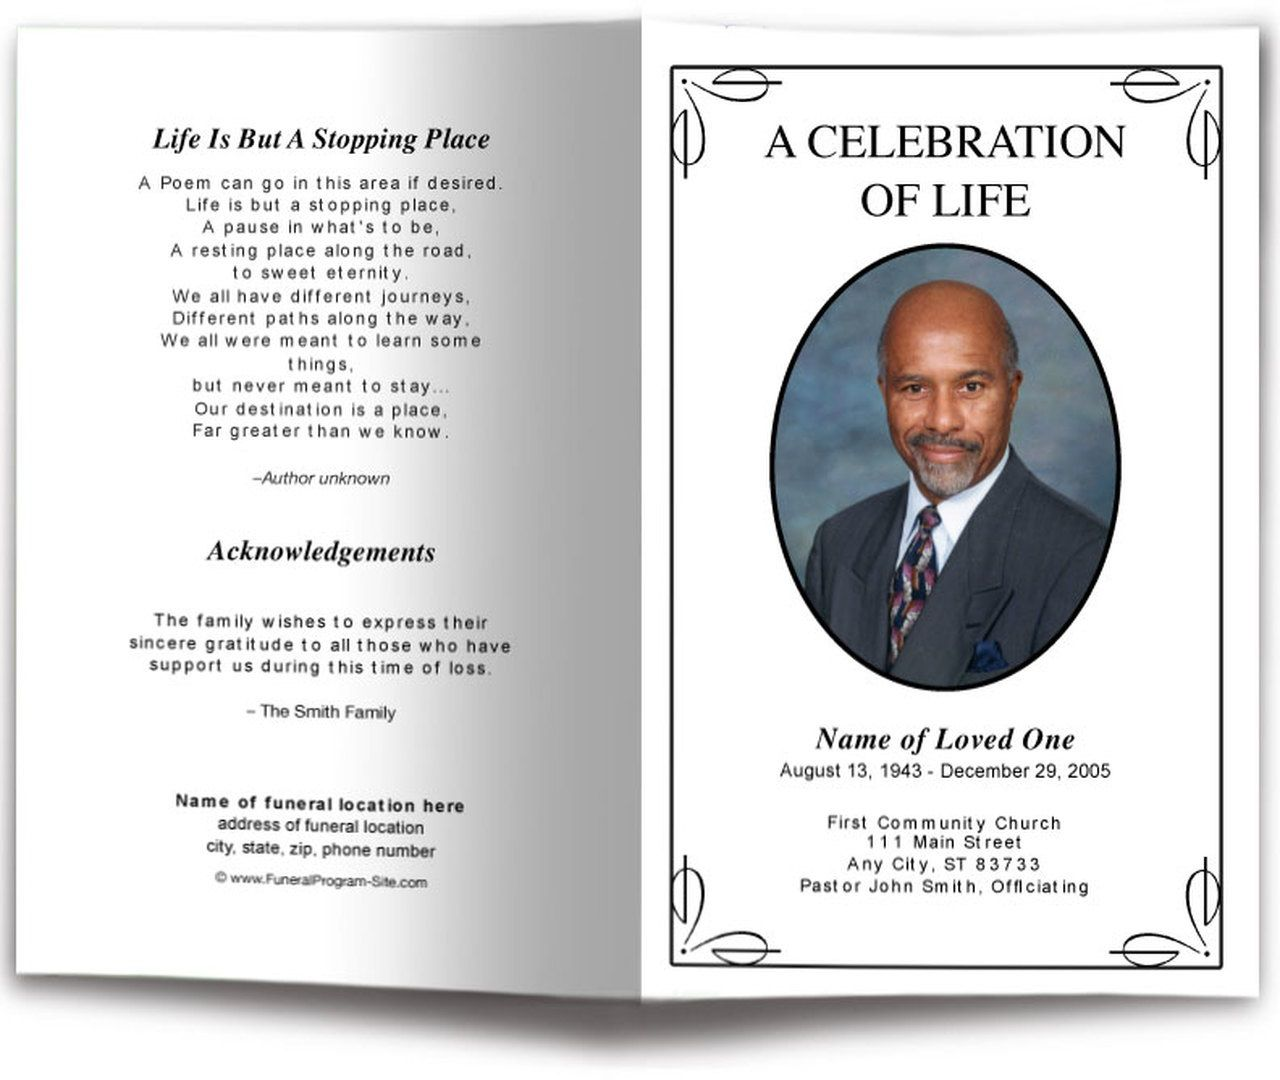 009 Magnificent Simple Funeral Program Template Free Highest Clarity  DownloadFull